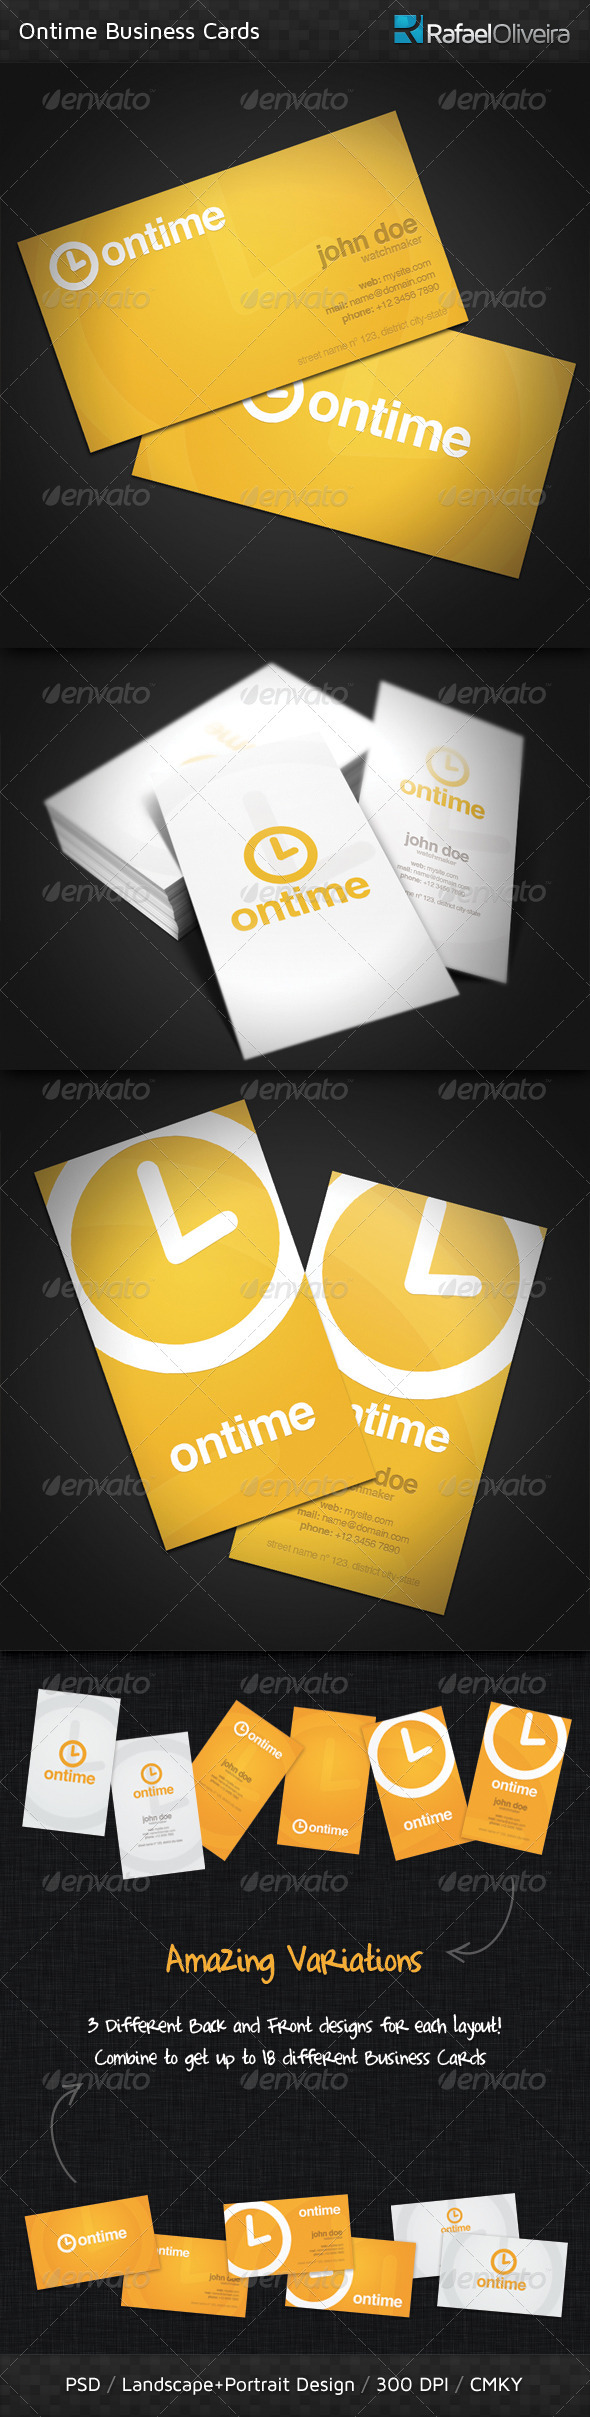 Ontime Business Card - Corporate Business Cards